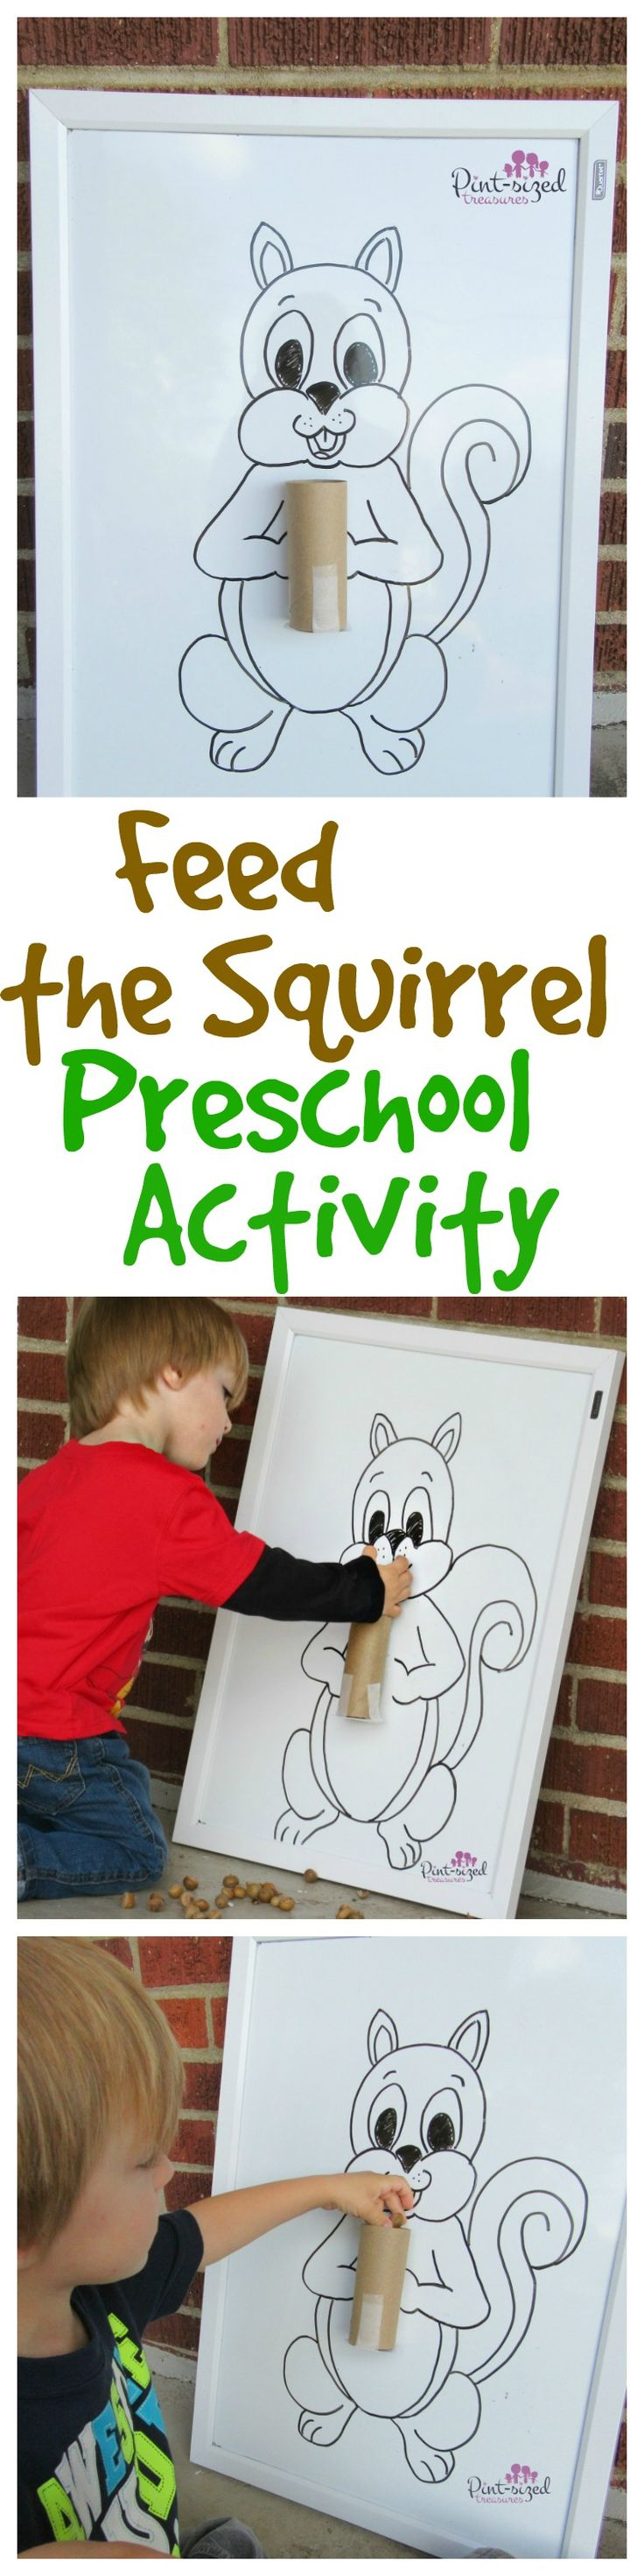 4467 best School Ideas images on Pinterest | Day care, Preschool and ...